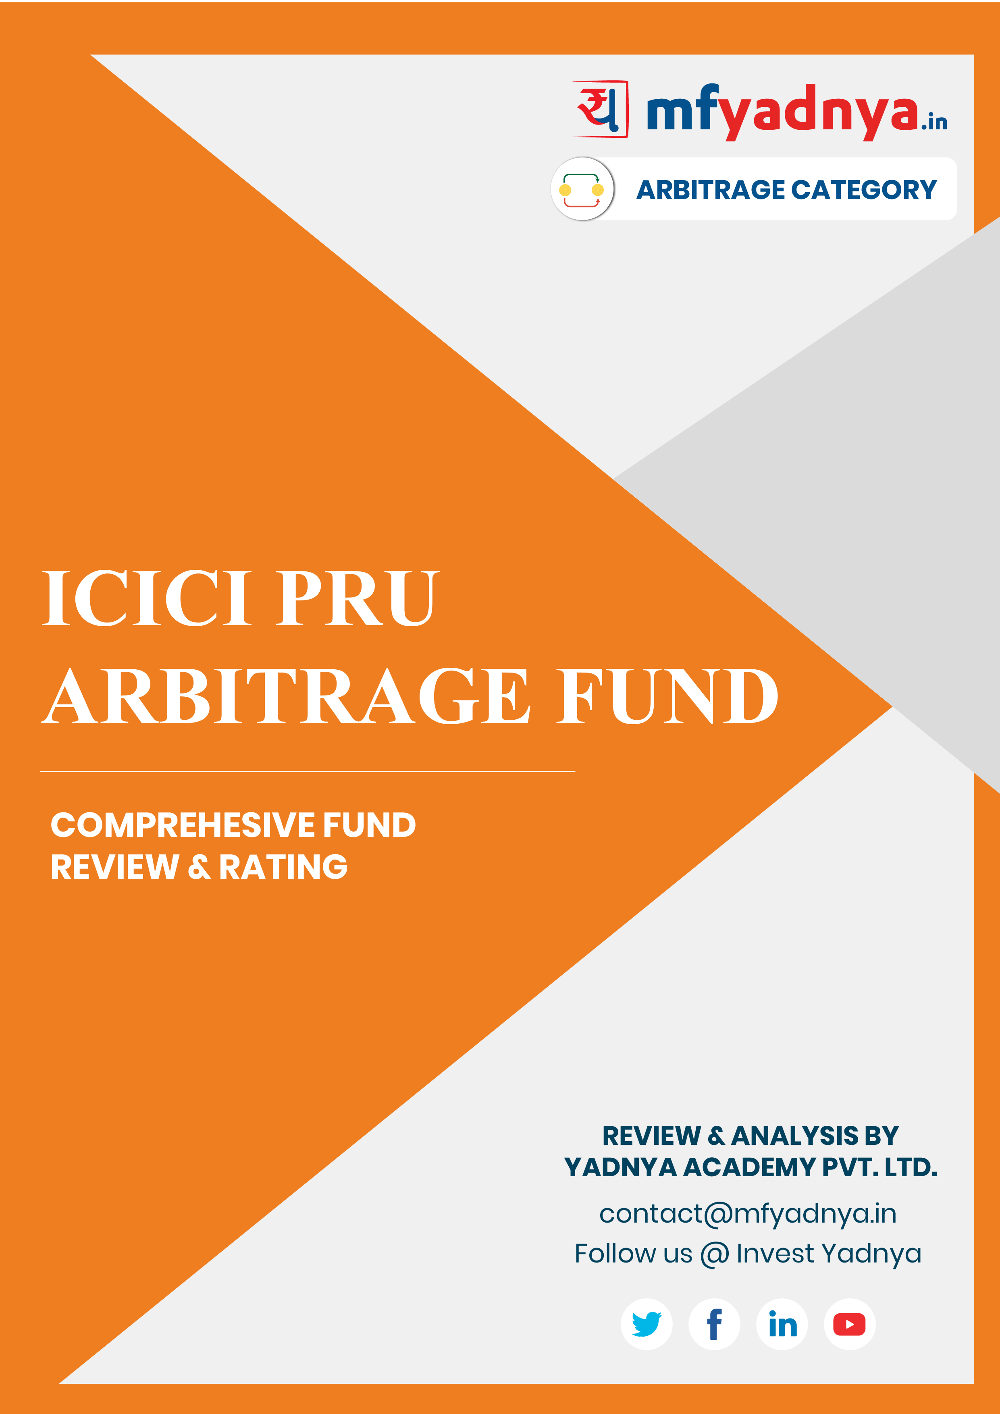 This e-book offers a comprehensive mutual fund review of ICICI Pru Arbitrage Fund. It reviews the fund's return, ratio, allocation etc. ✔ Detailed Mutual Fund Analysis ✔ Latest Research Reports